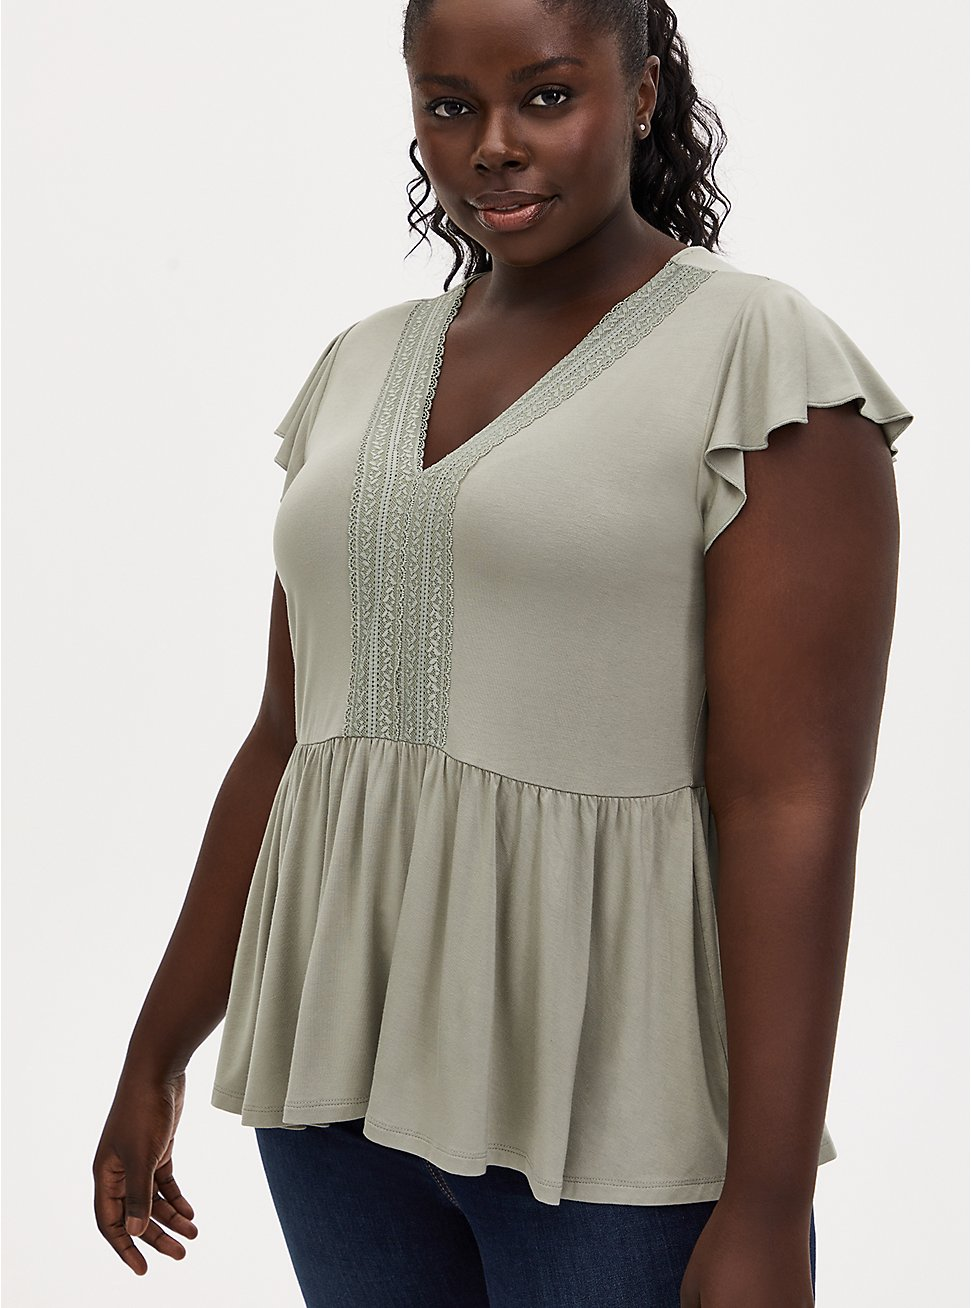 Super Soft Sage Green Lace Trim Babydoll Top, SEAGRASS, hi-res